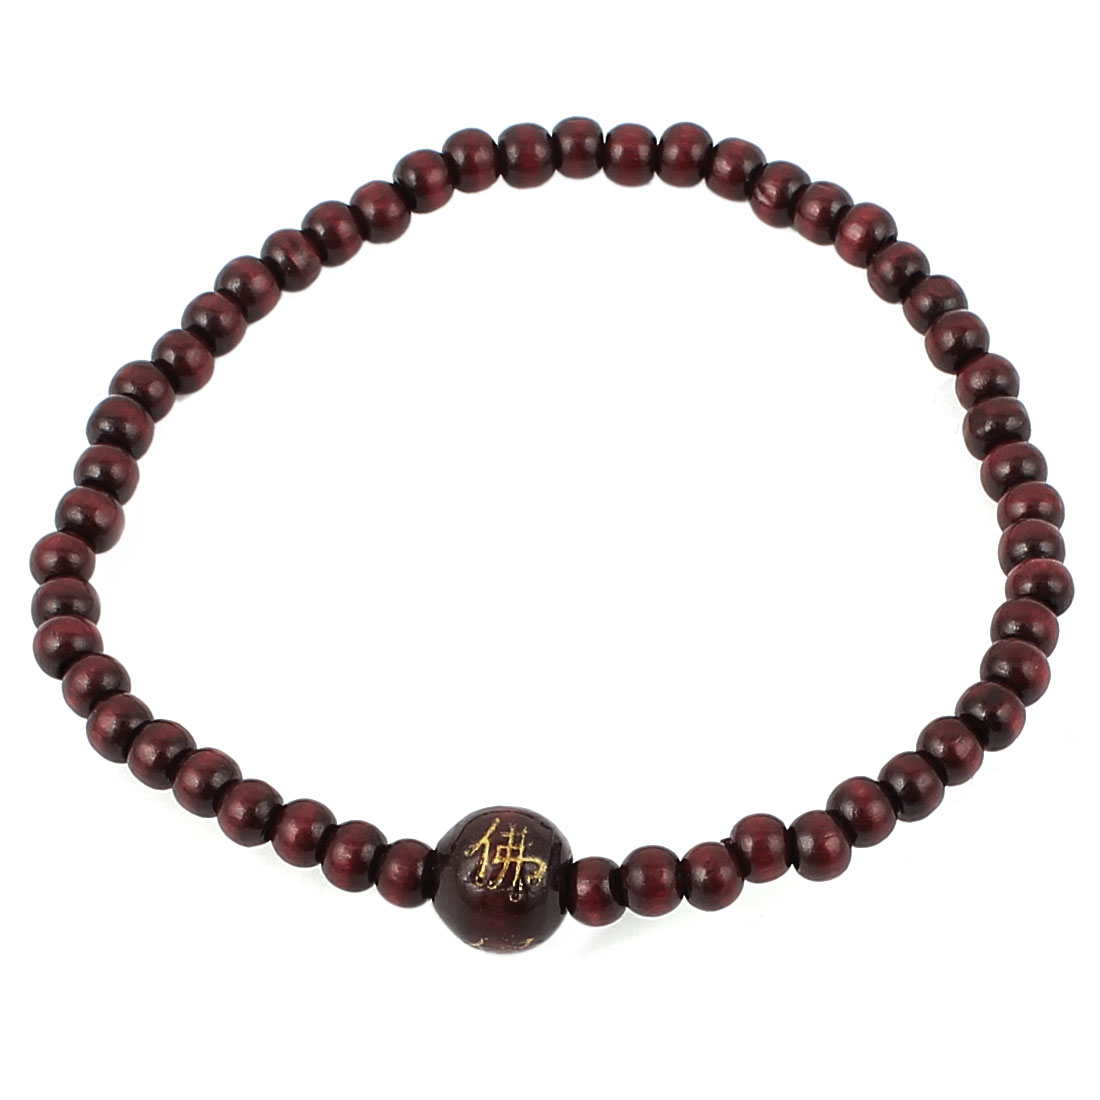 Plastic Stretch Beaded Beads Buddhist Prayer Bracelet Burgundy